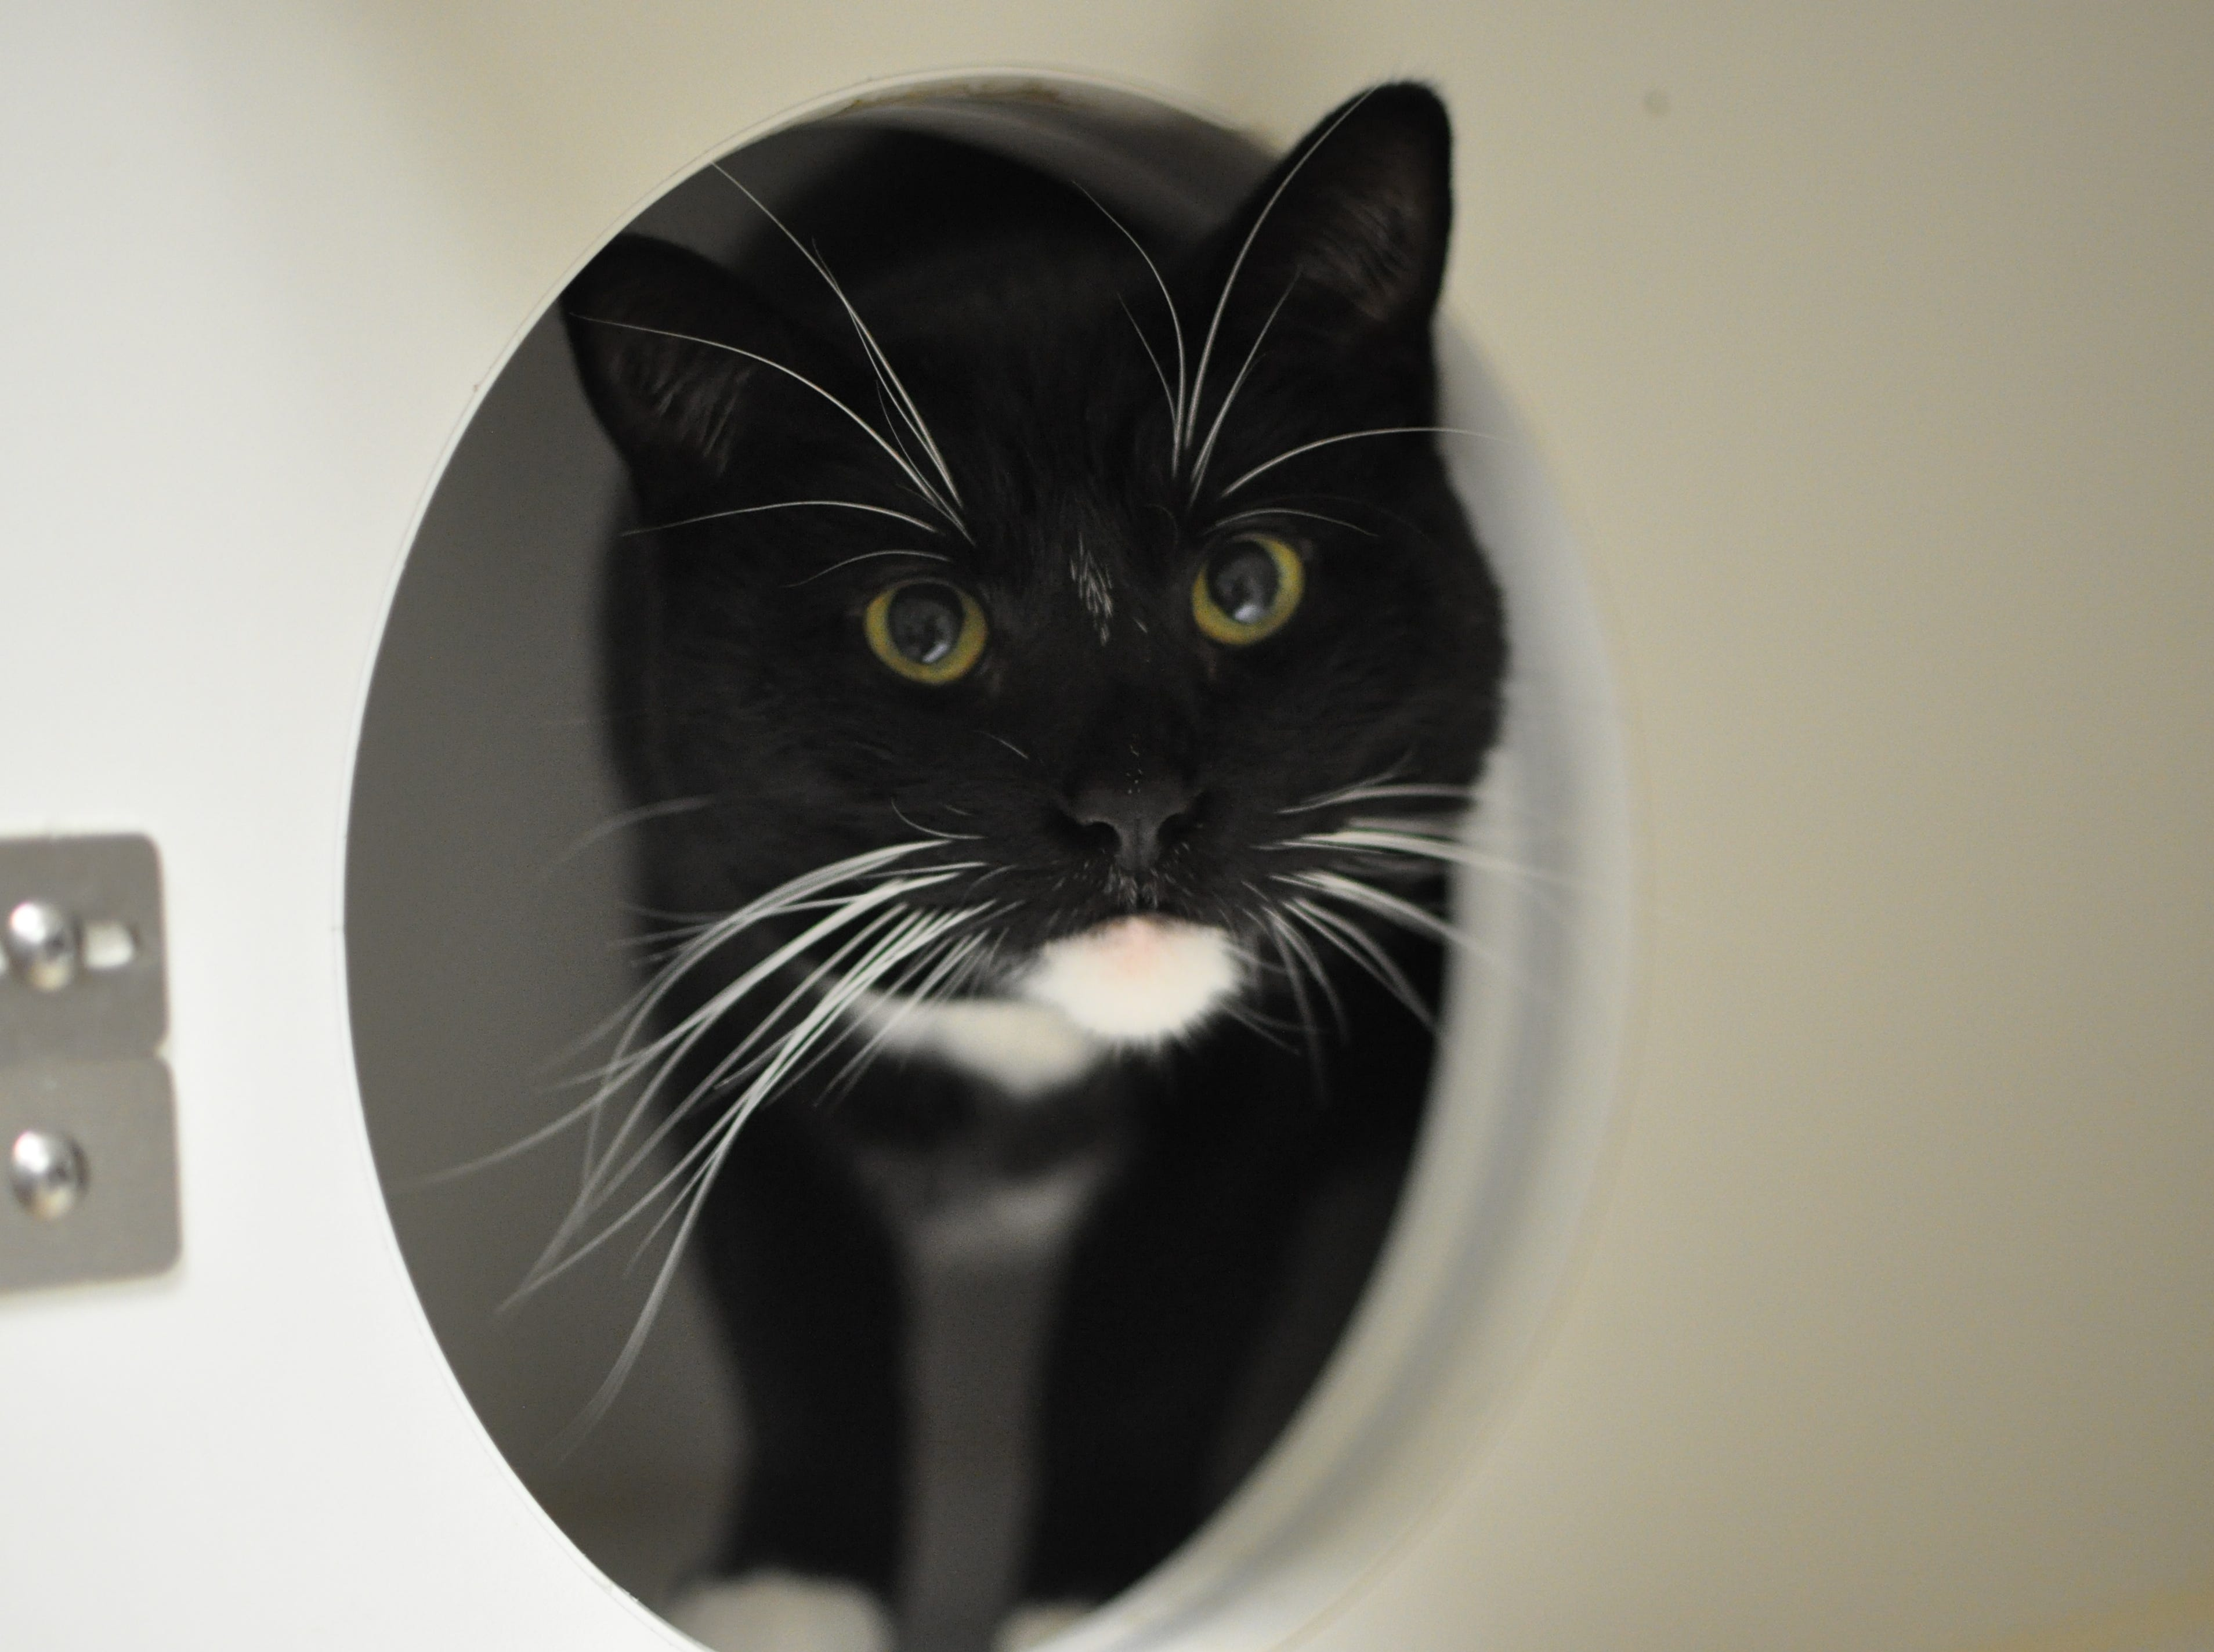 Five-year-old Stanley loves to relax and snuggle and is outgoing. He is neutered.